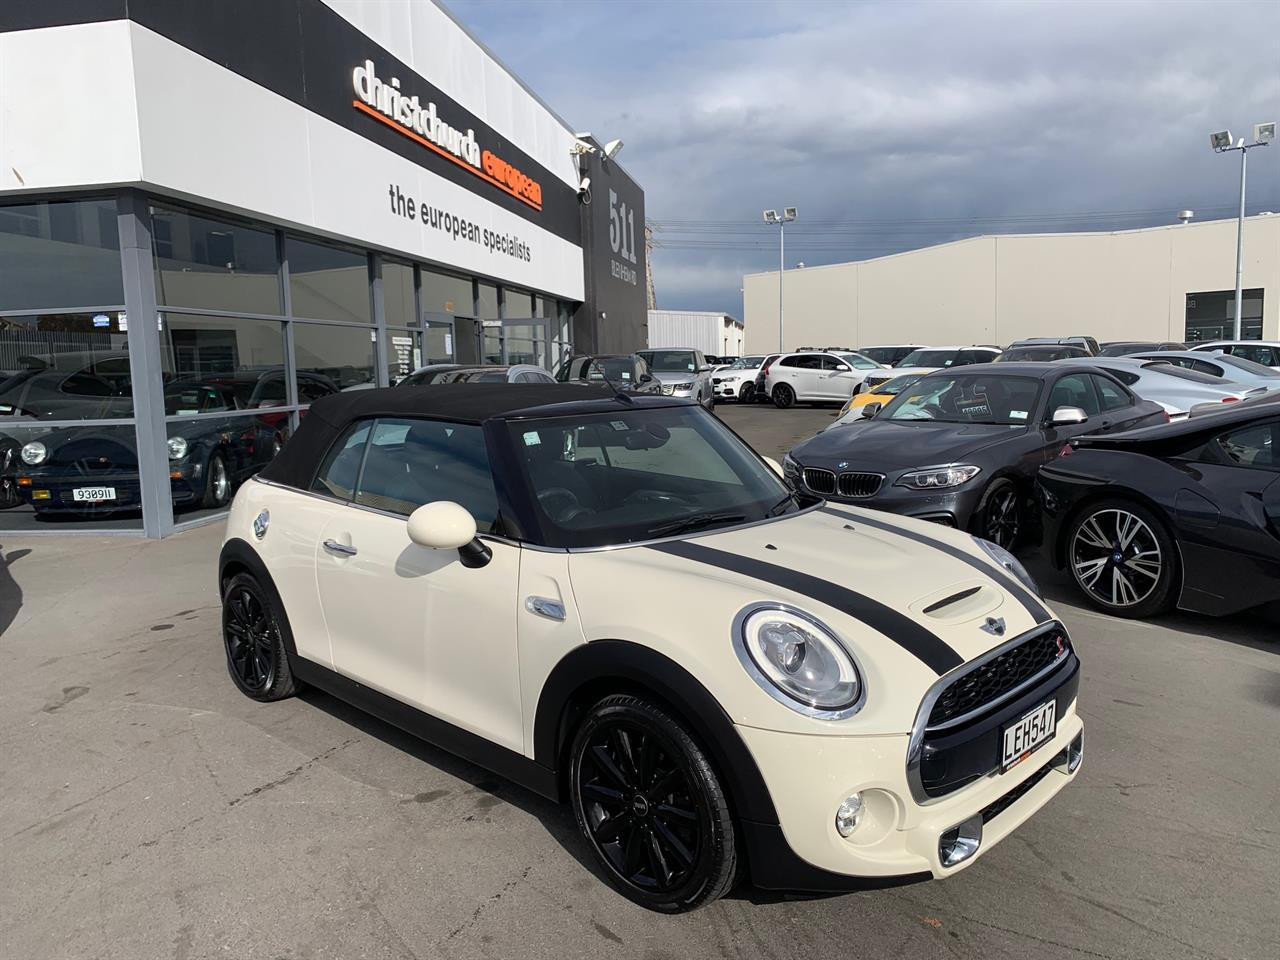 image-9, 2018 Mini Cooper S 2.0T 6 Speed Manual Cabriolet N at Christchurch